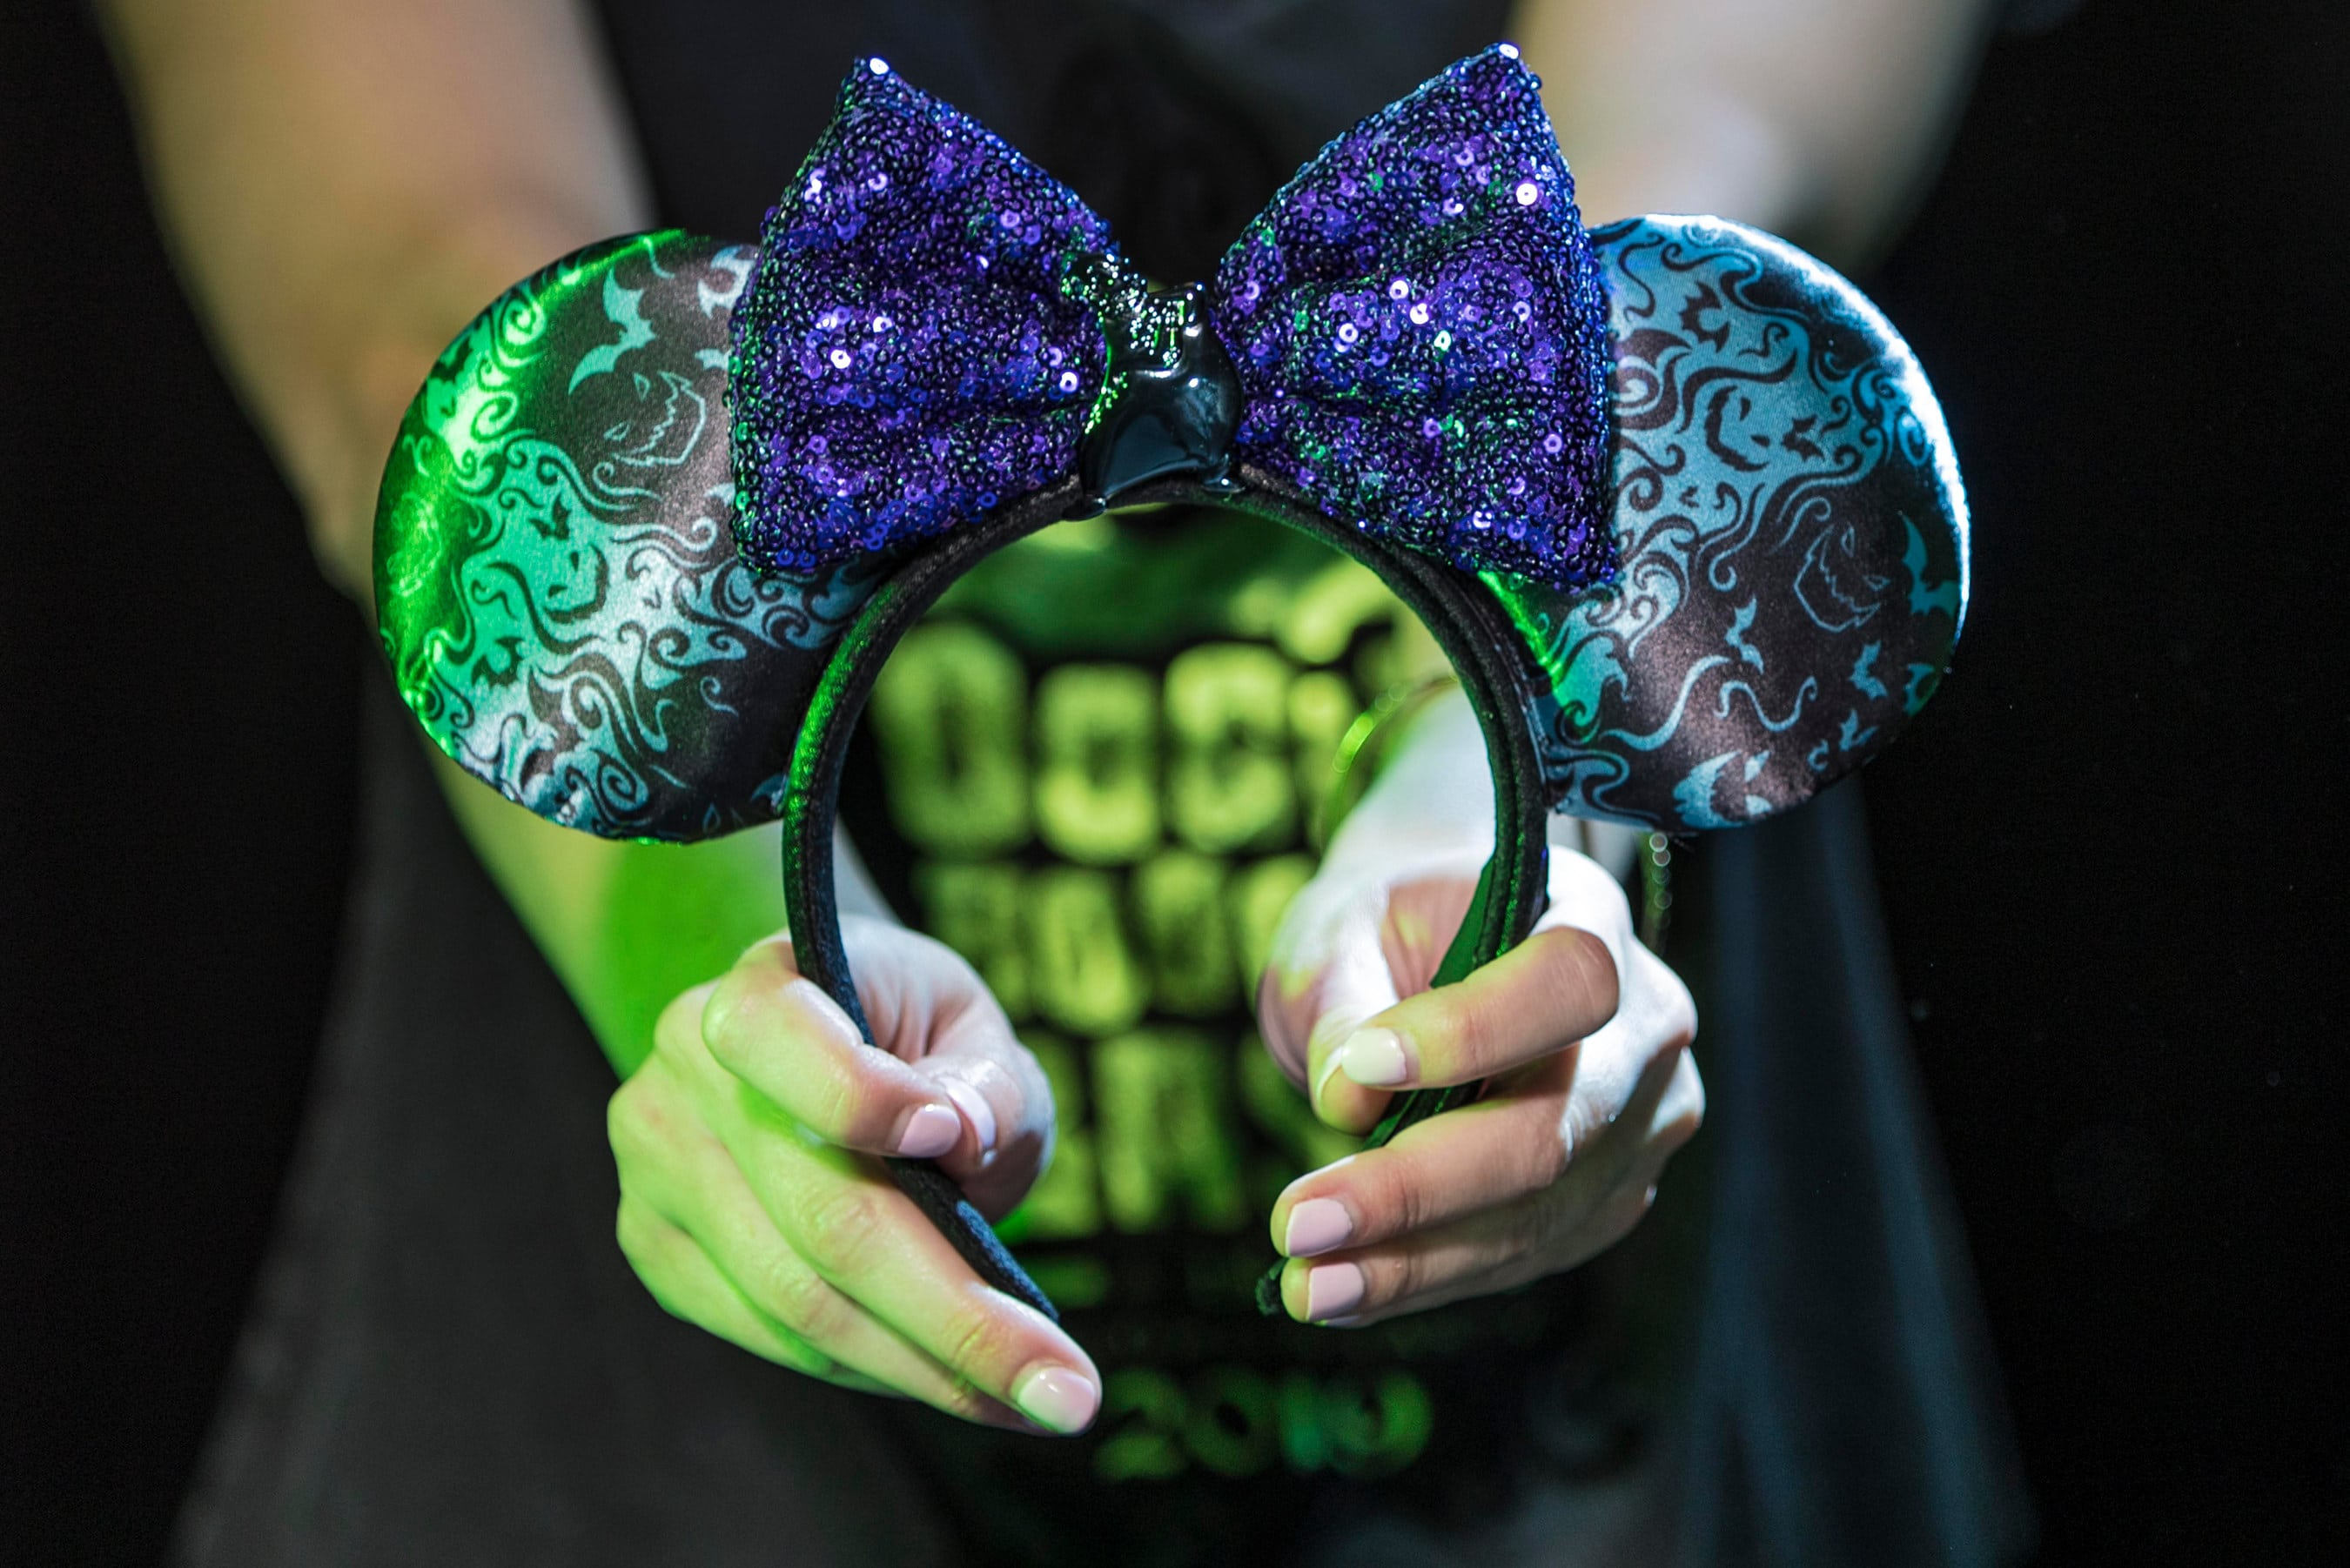 An Oogie Boogie Bash Mickey ears headband with purple sequined bow.